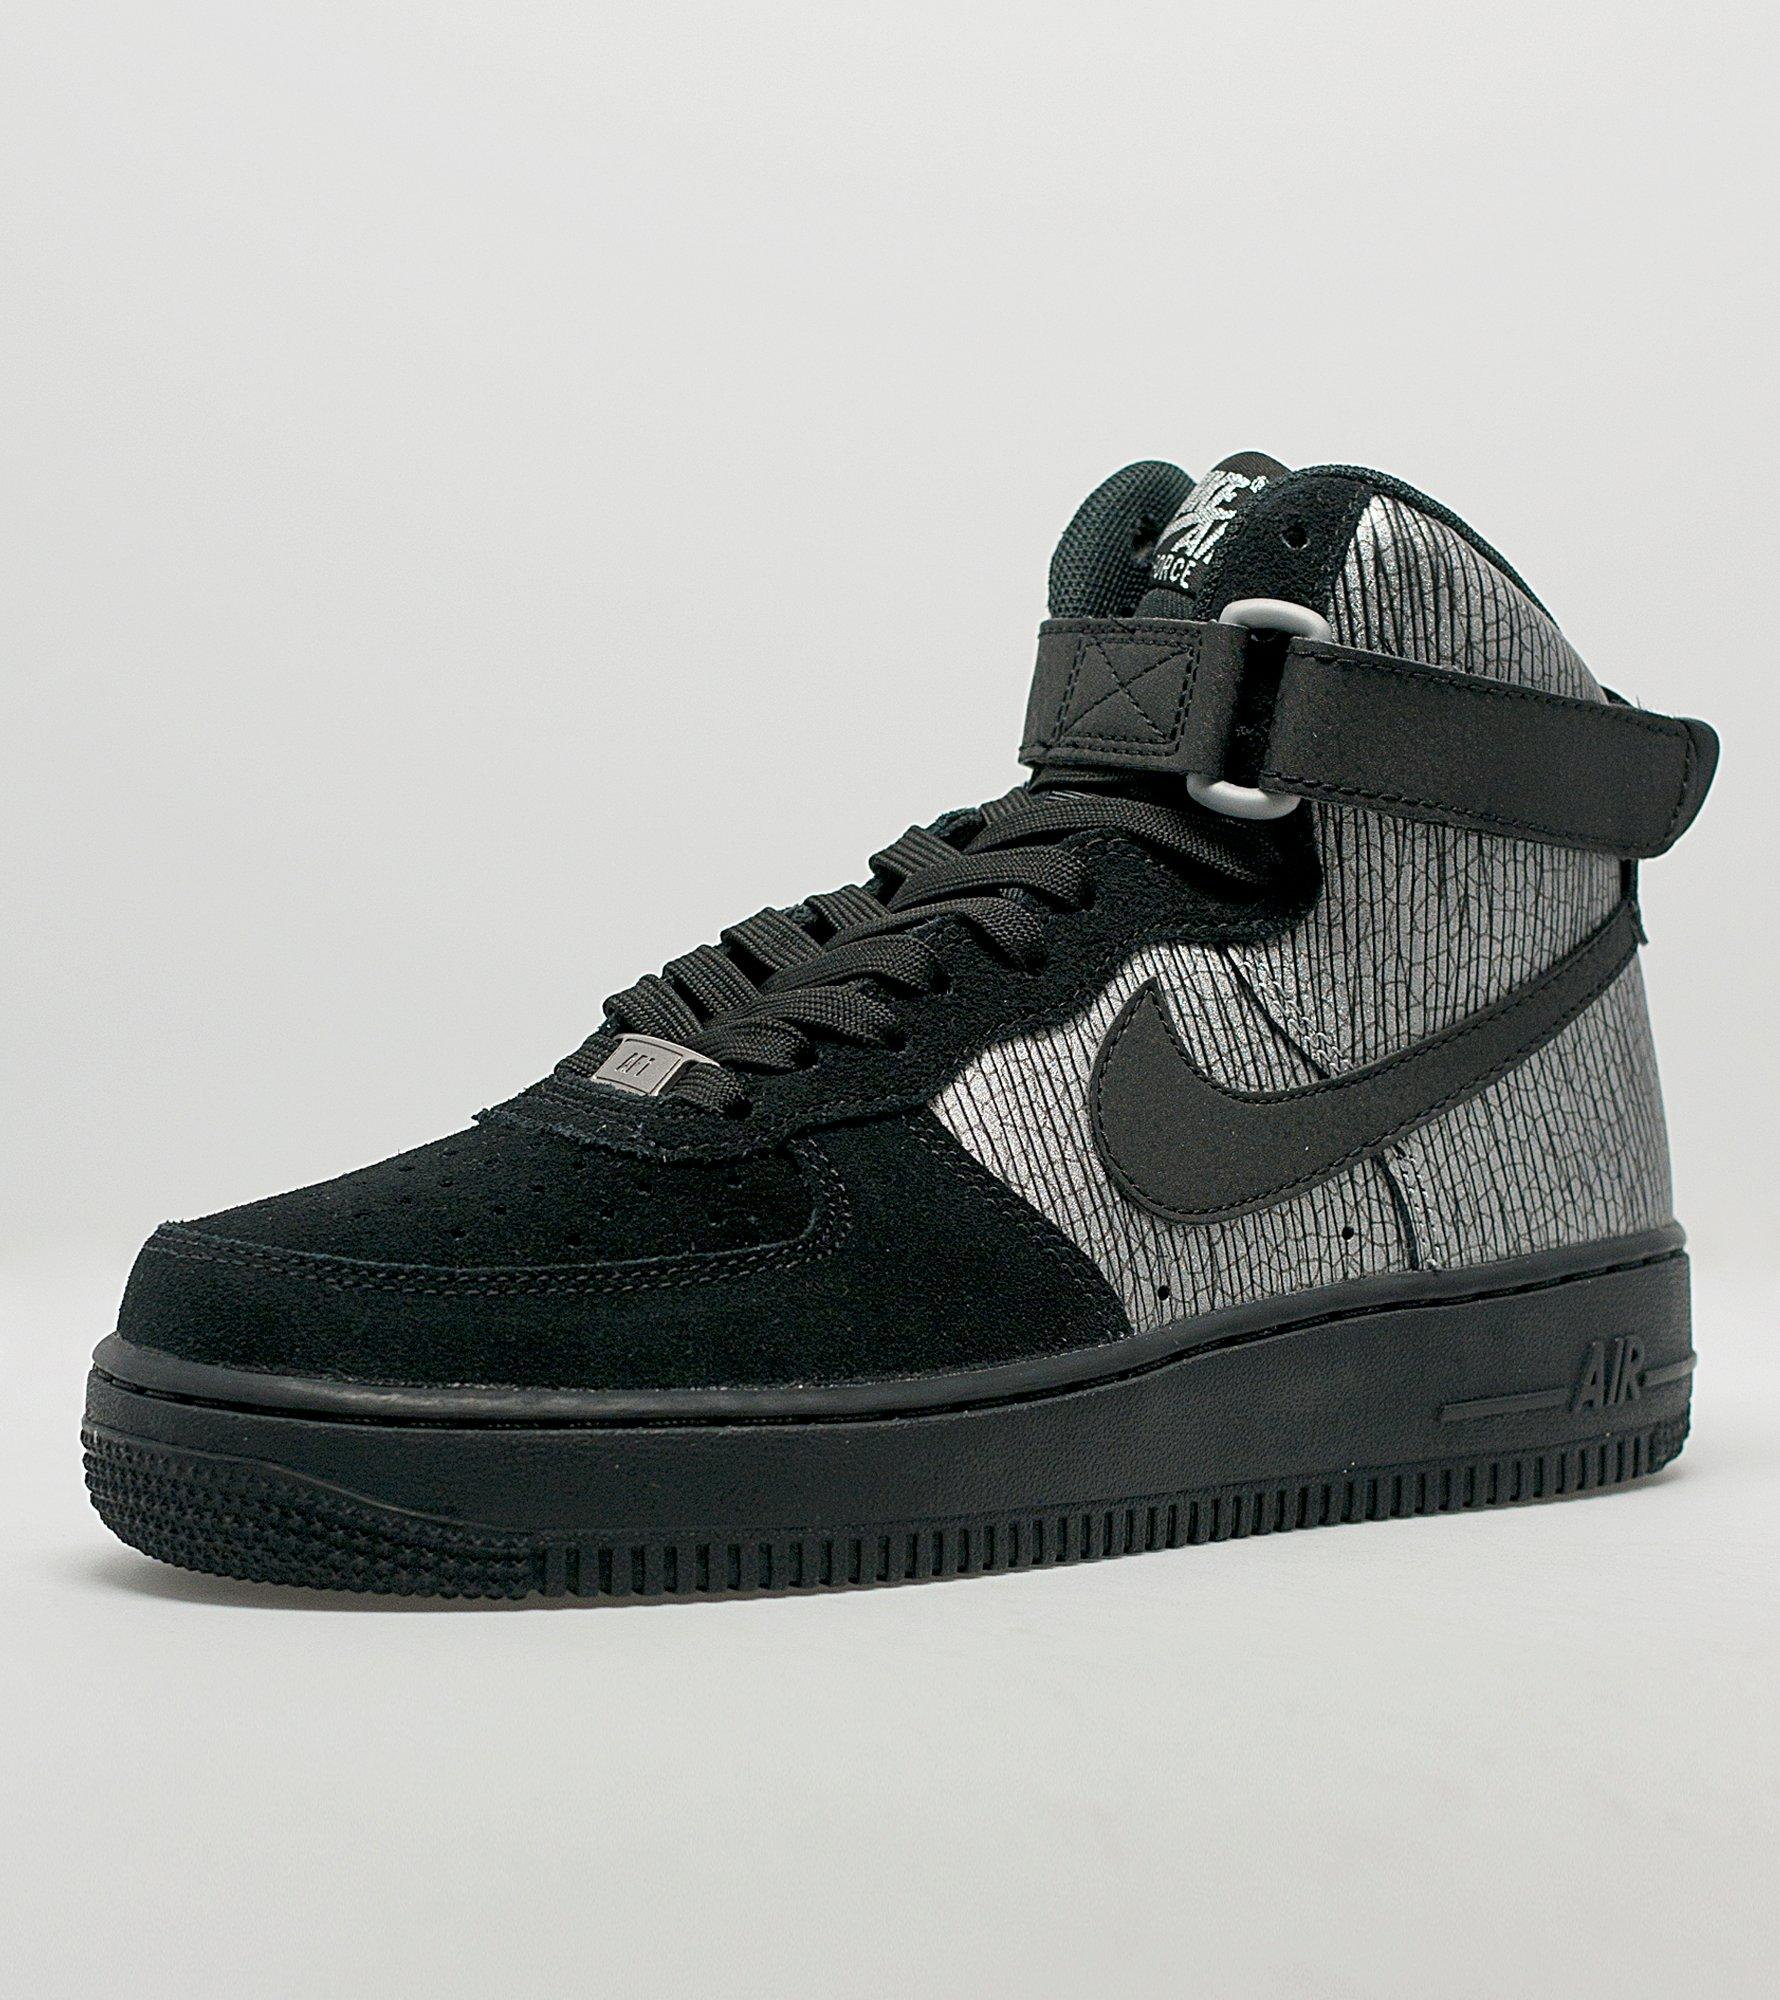 nike air force 1 mid prm womens 'a tale of two cities's